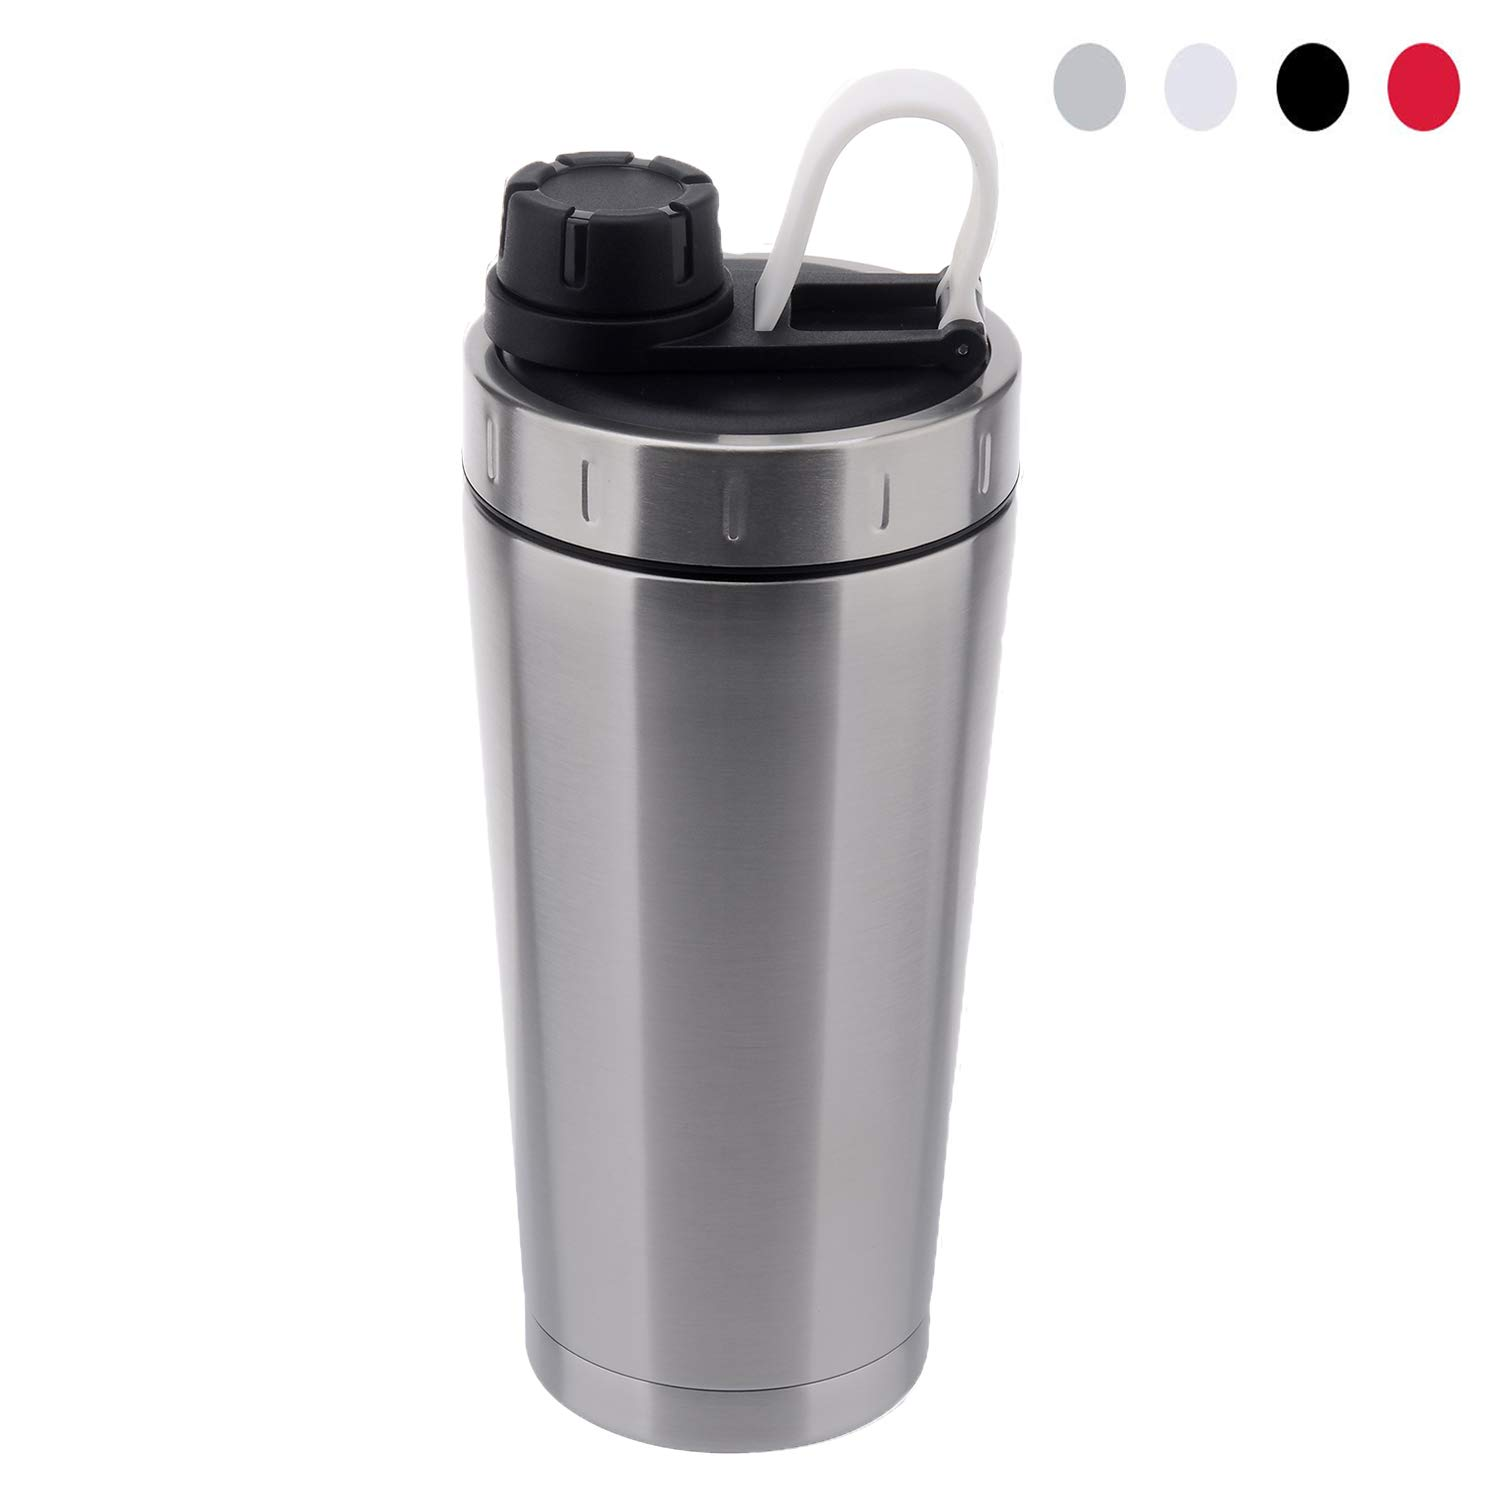 Stainless Steel Protein Shaker Bottle Insulated Keeps Hot/Cold Dishwasher Safe/Double Wall/Odor Resistant/Sweatproof/Leakproof/BPA Free 20 oz (Silver)